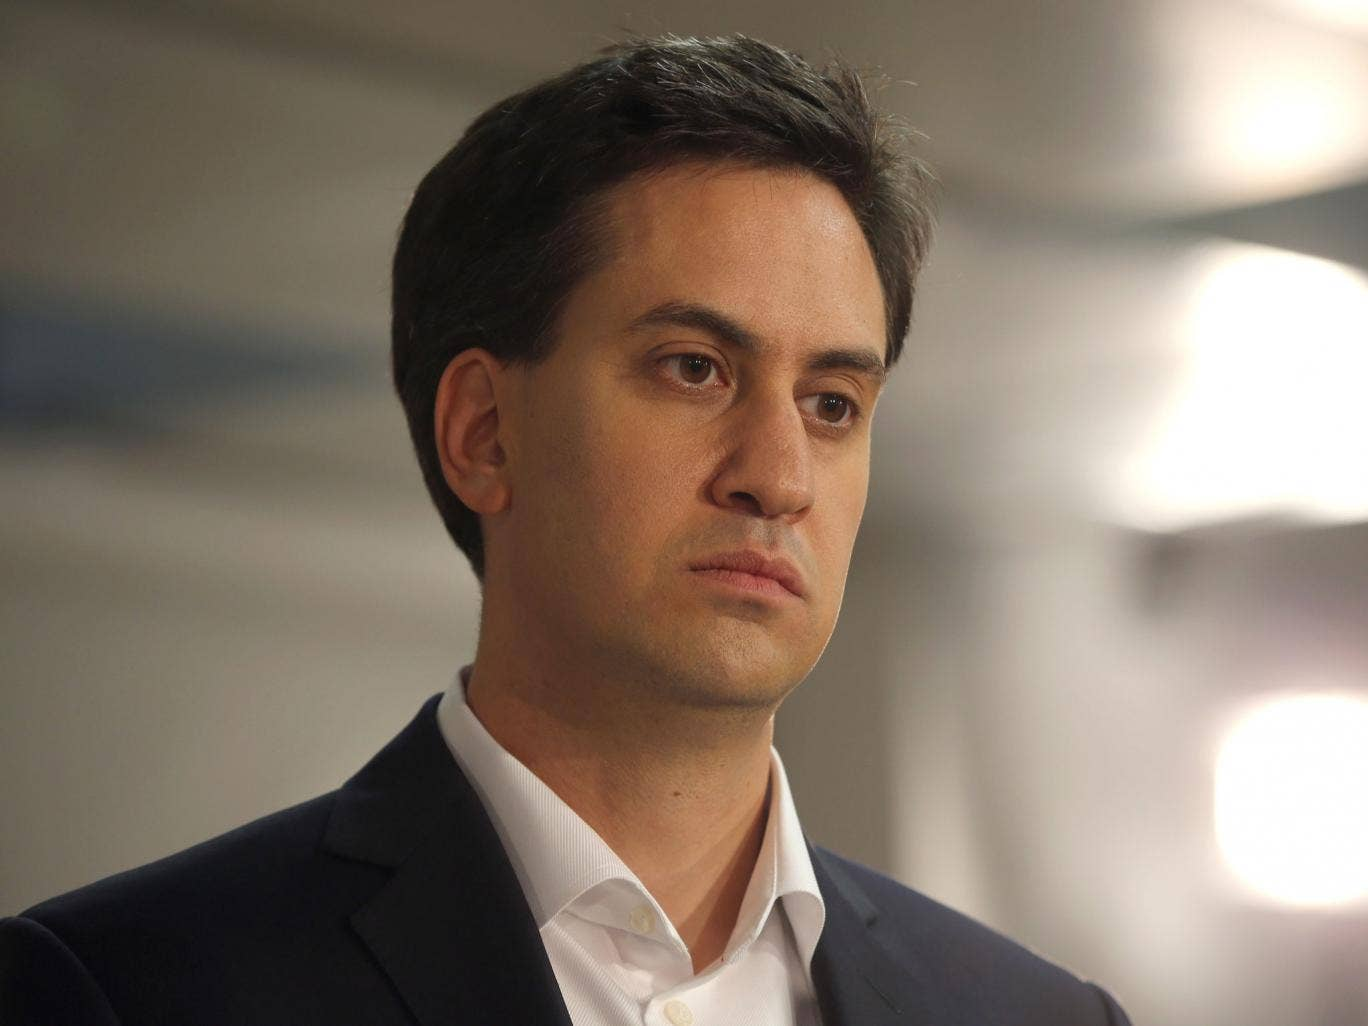 Miliband needed within months of his election as leader to demonstrate his independence.